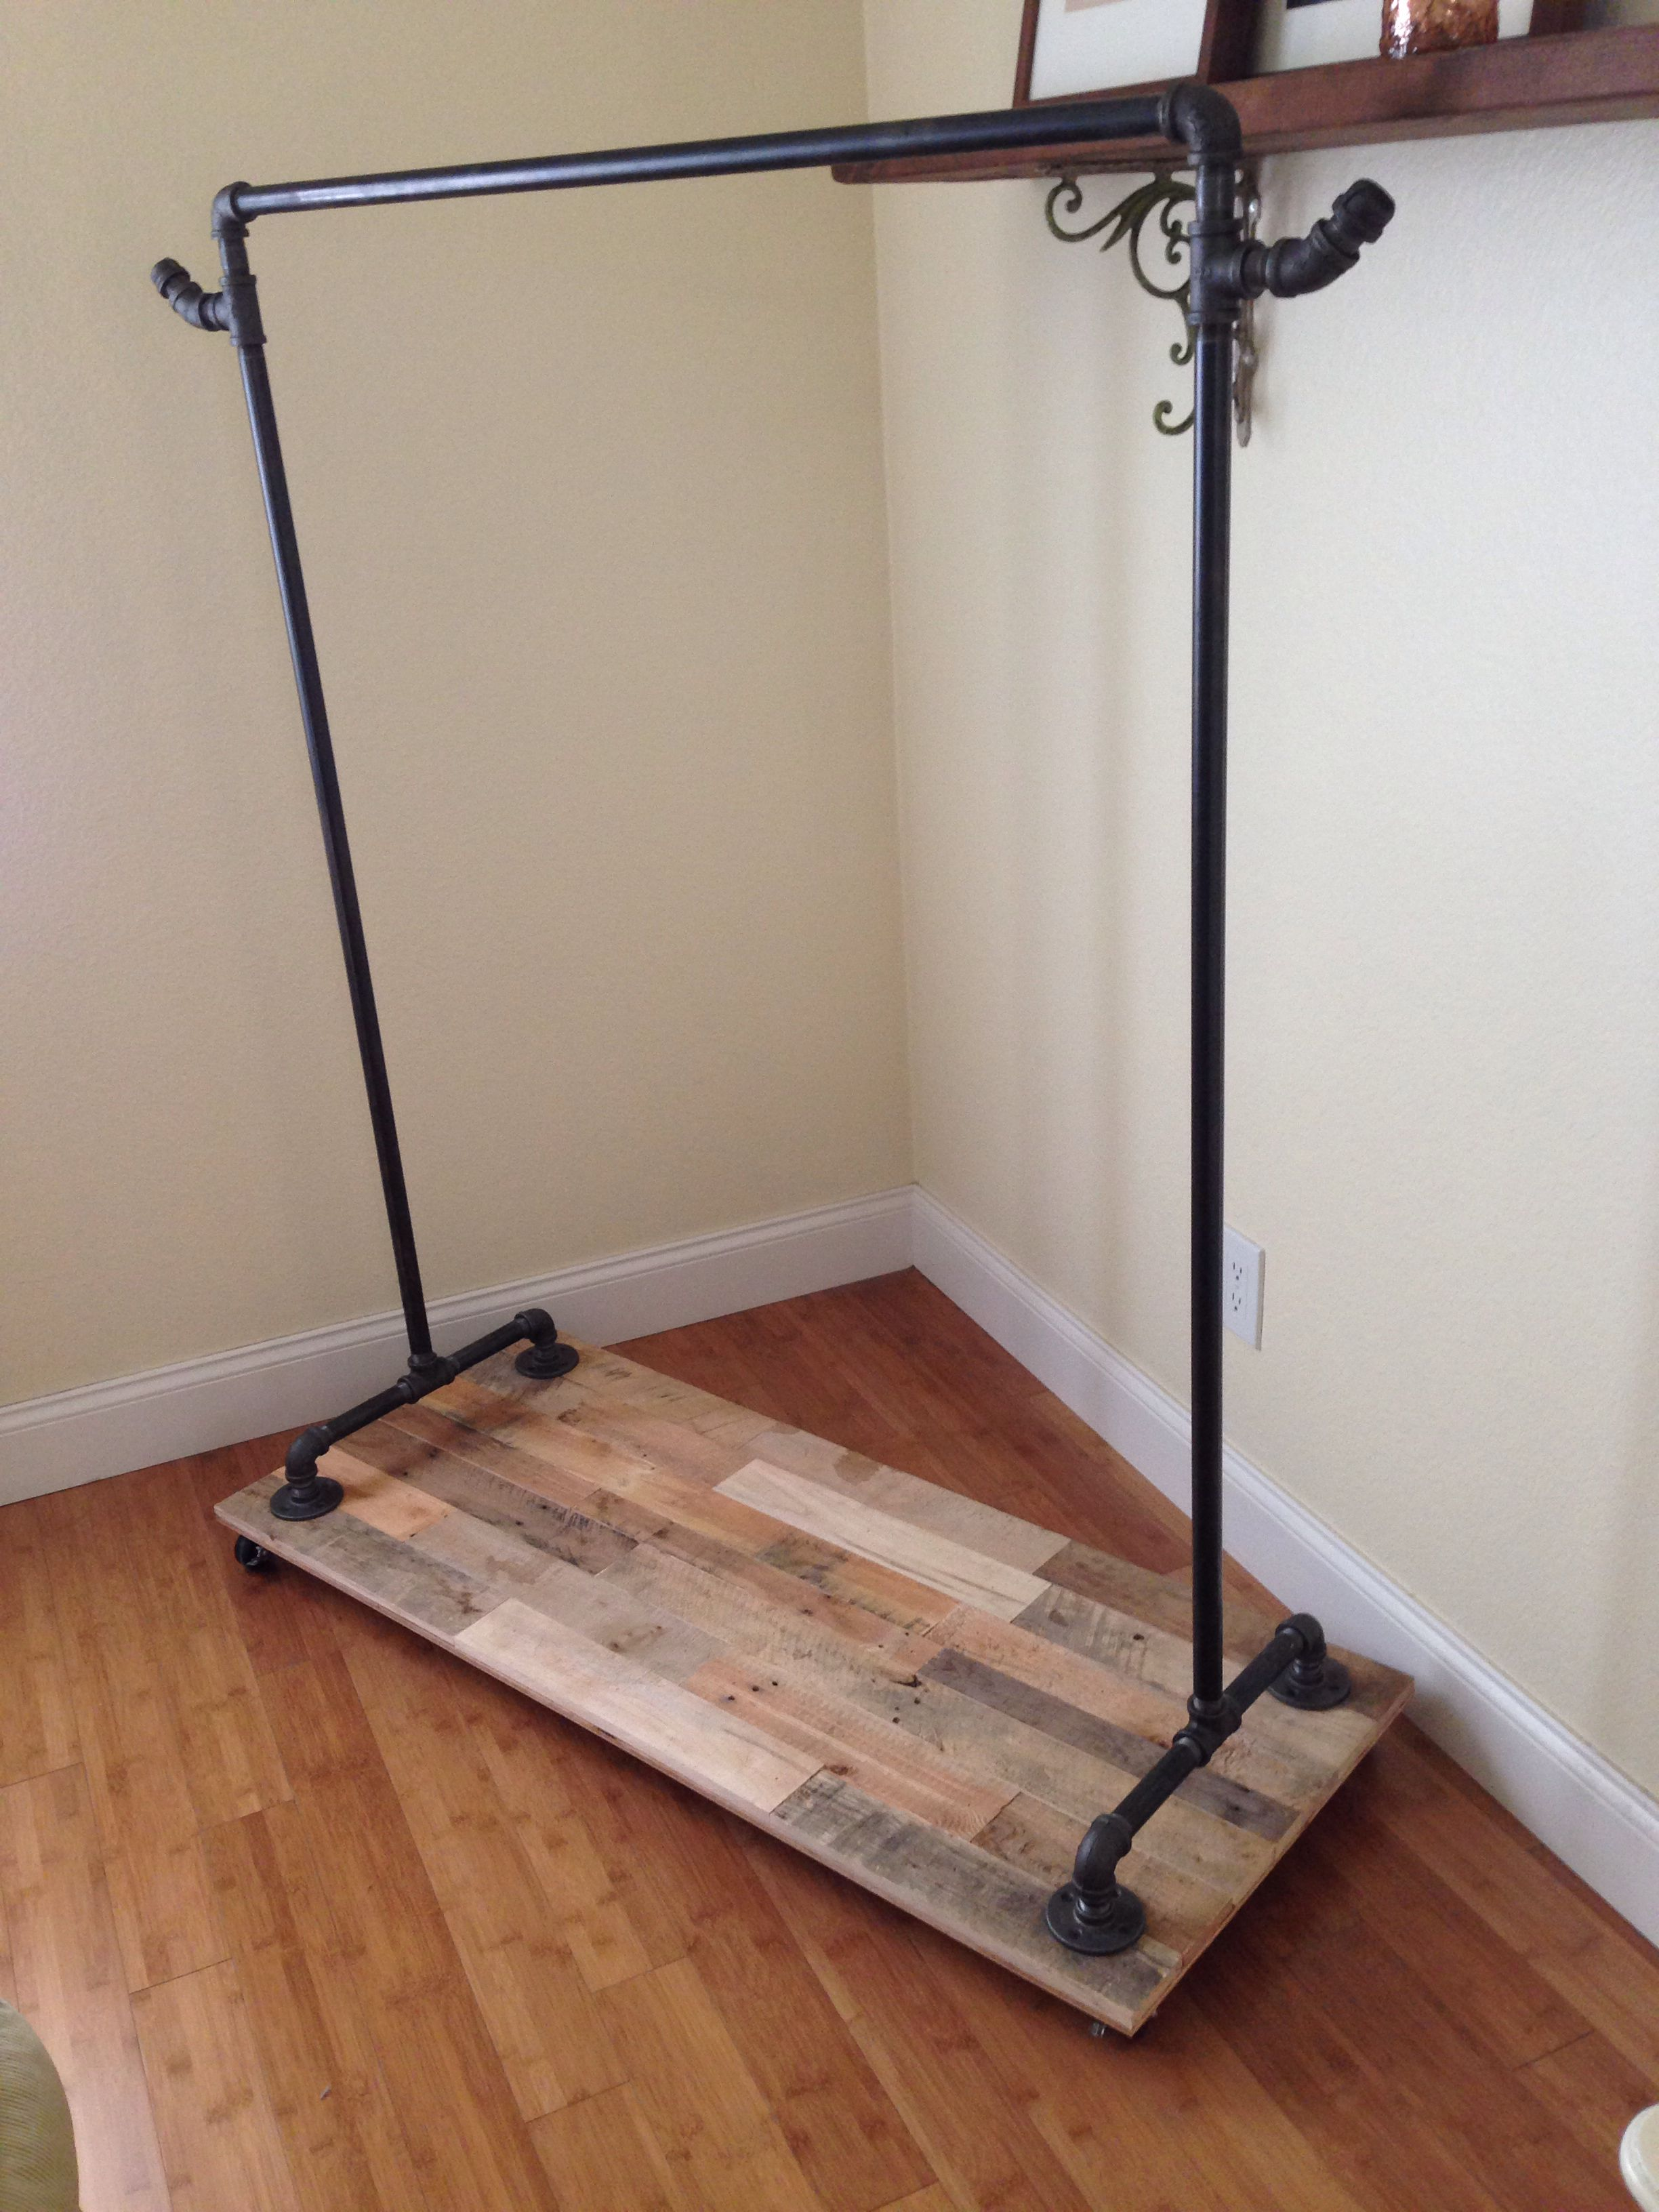 Le Meilleur Pipe Clothing Rack With Reclaimed Pallet Base On Wheels Ce Mois Ci